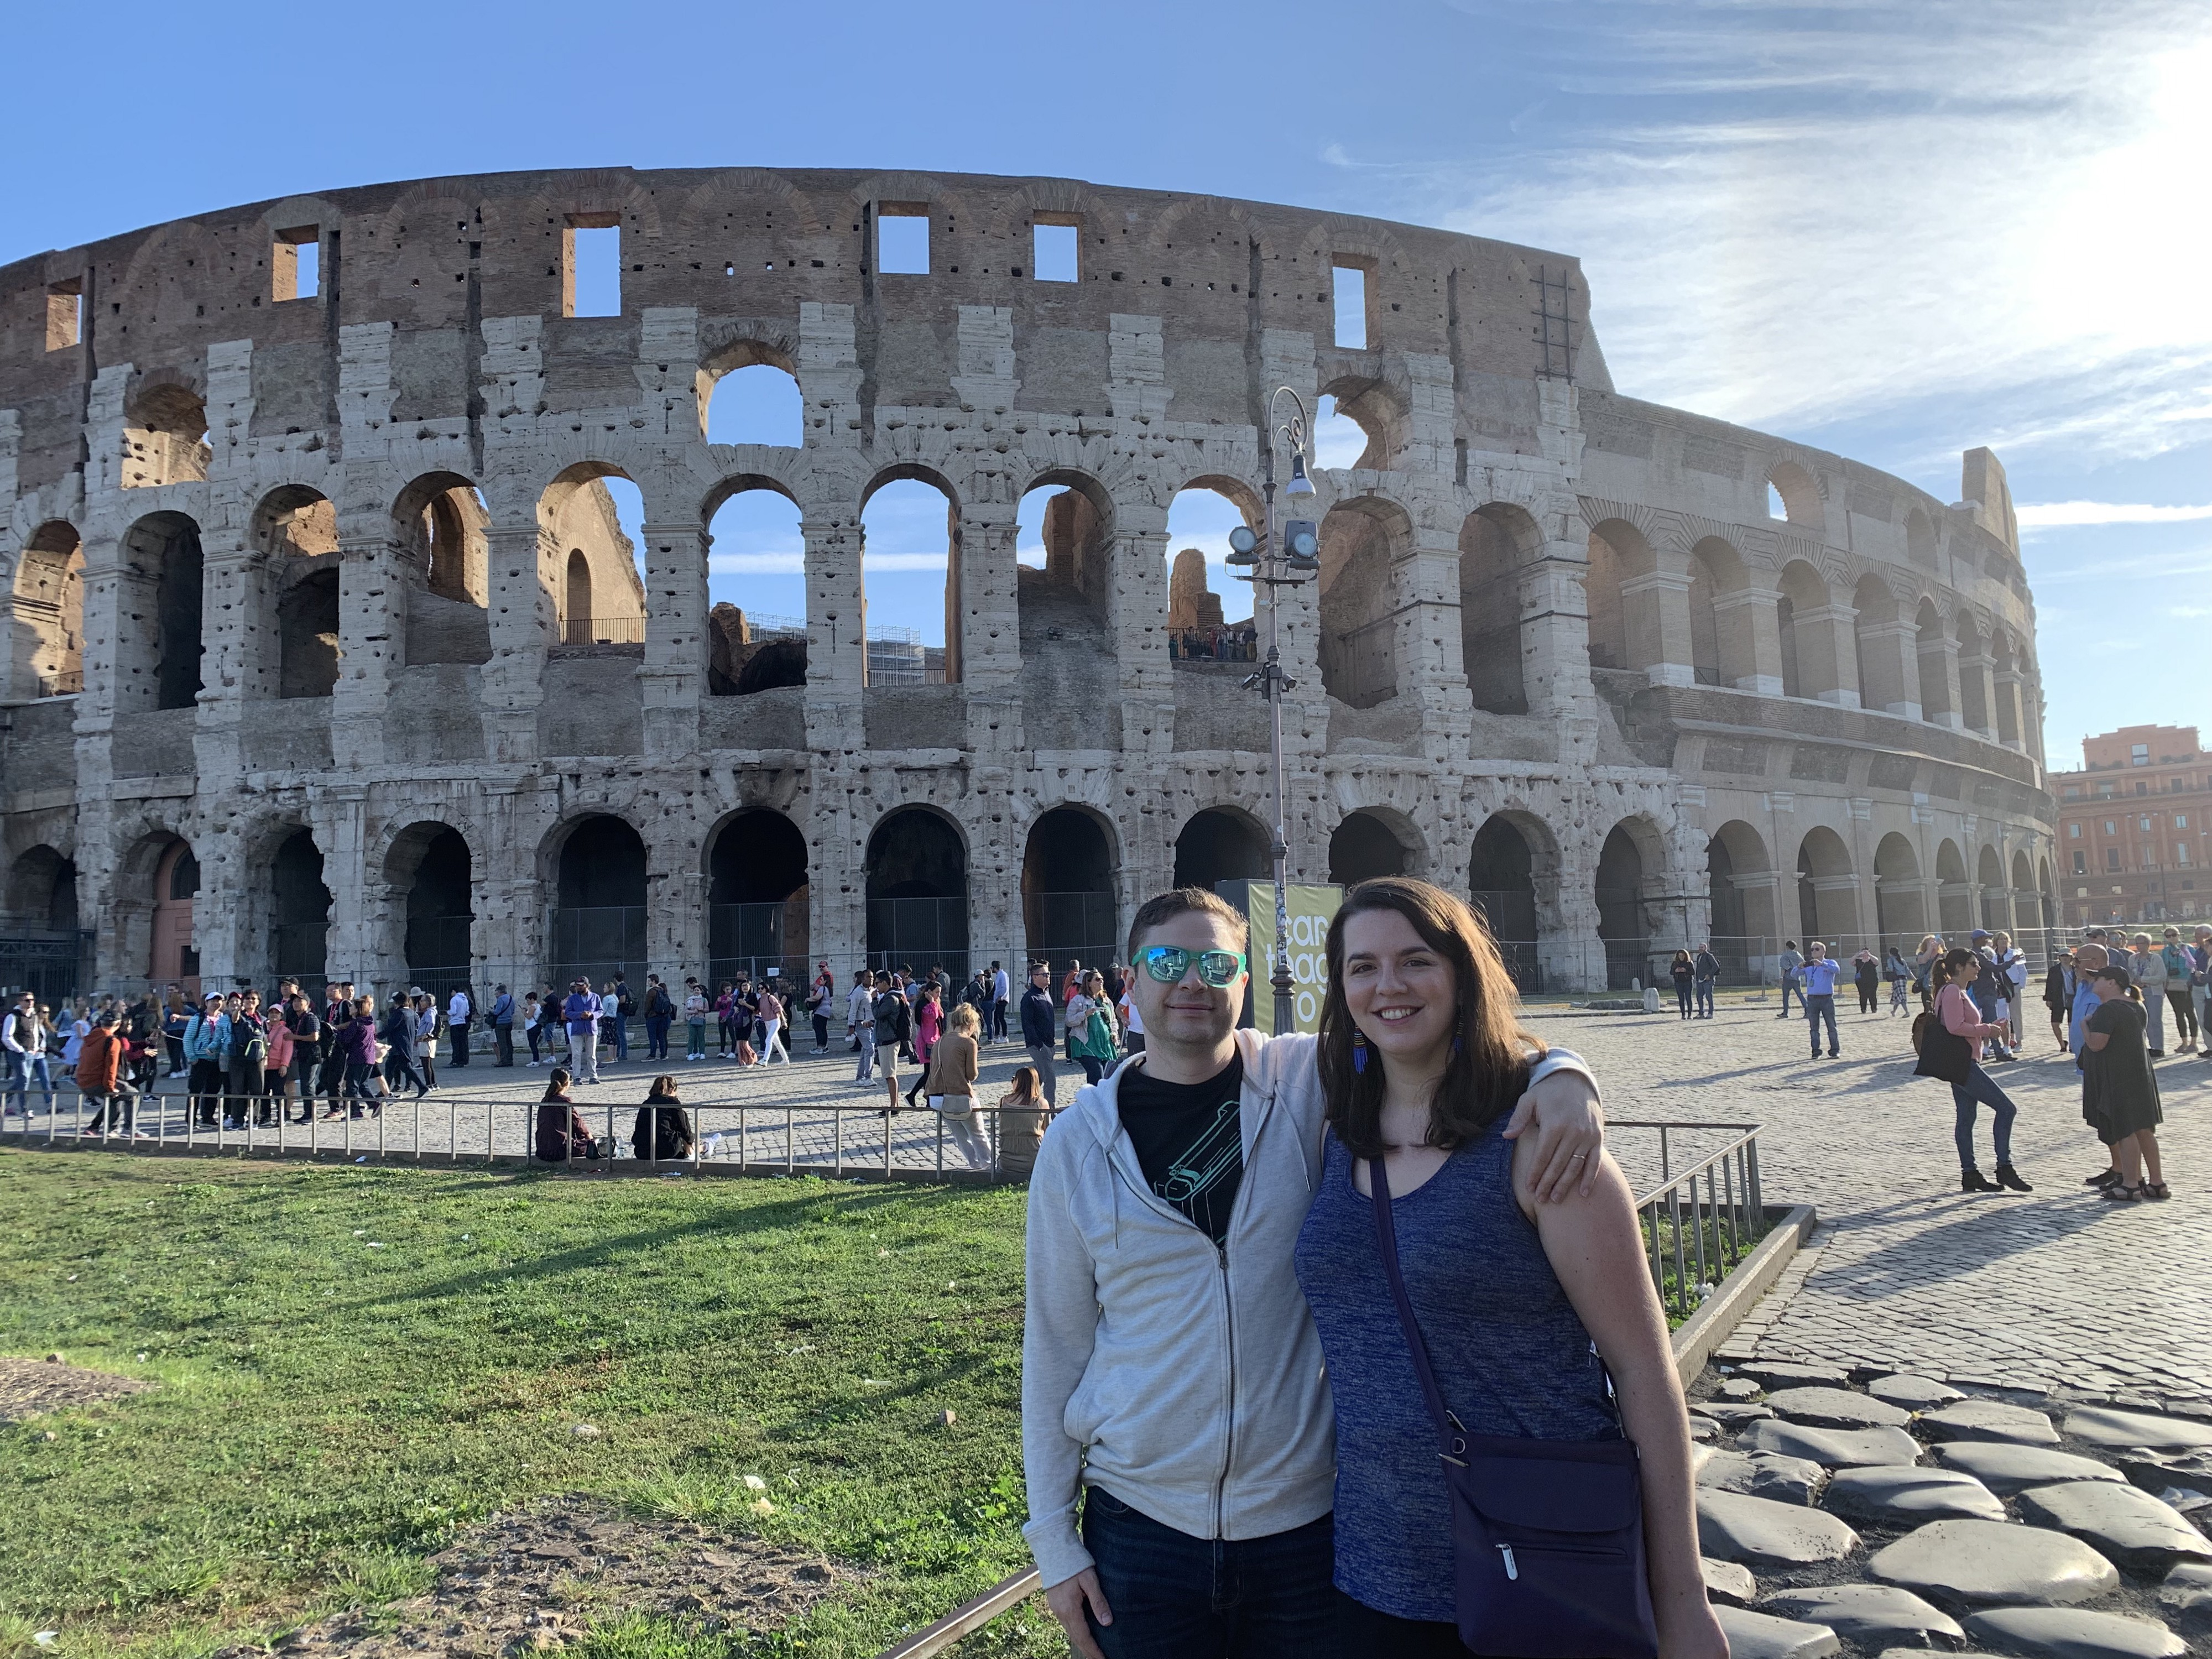 Tim and Megan pose in front of the Colosseum in Rome, Italy.